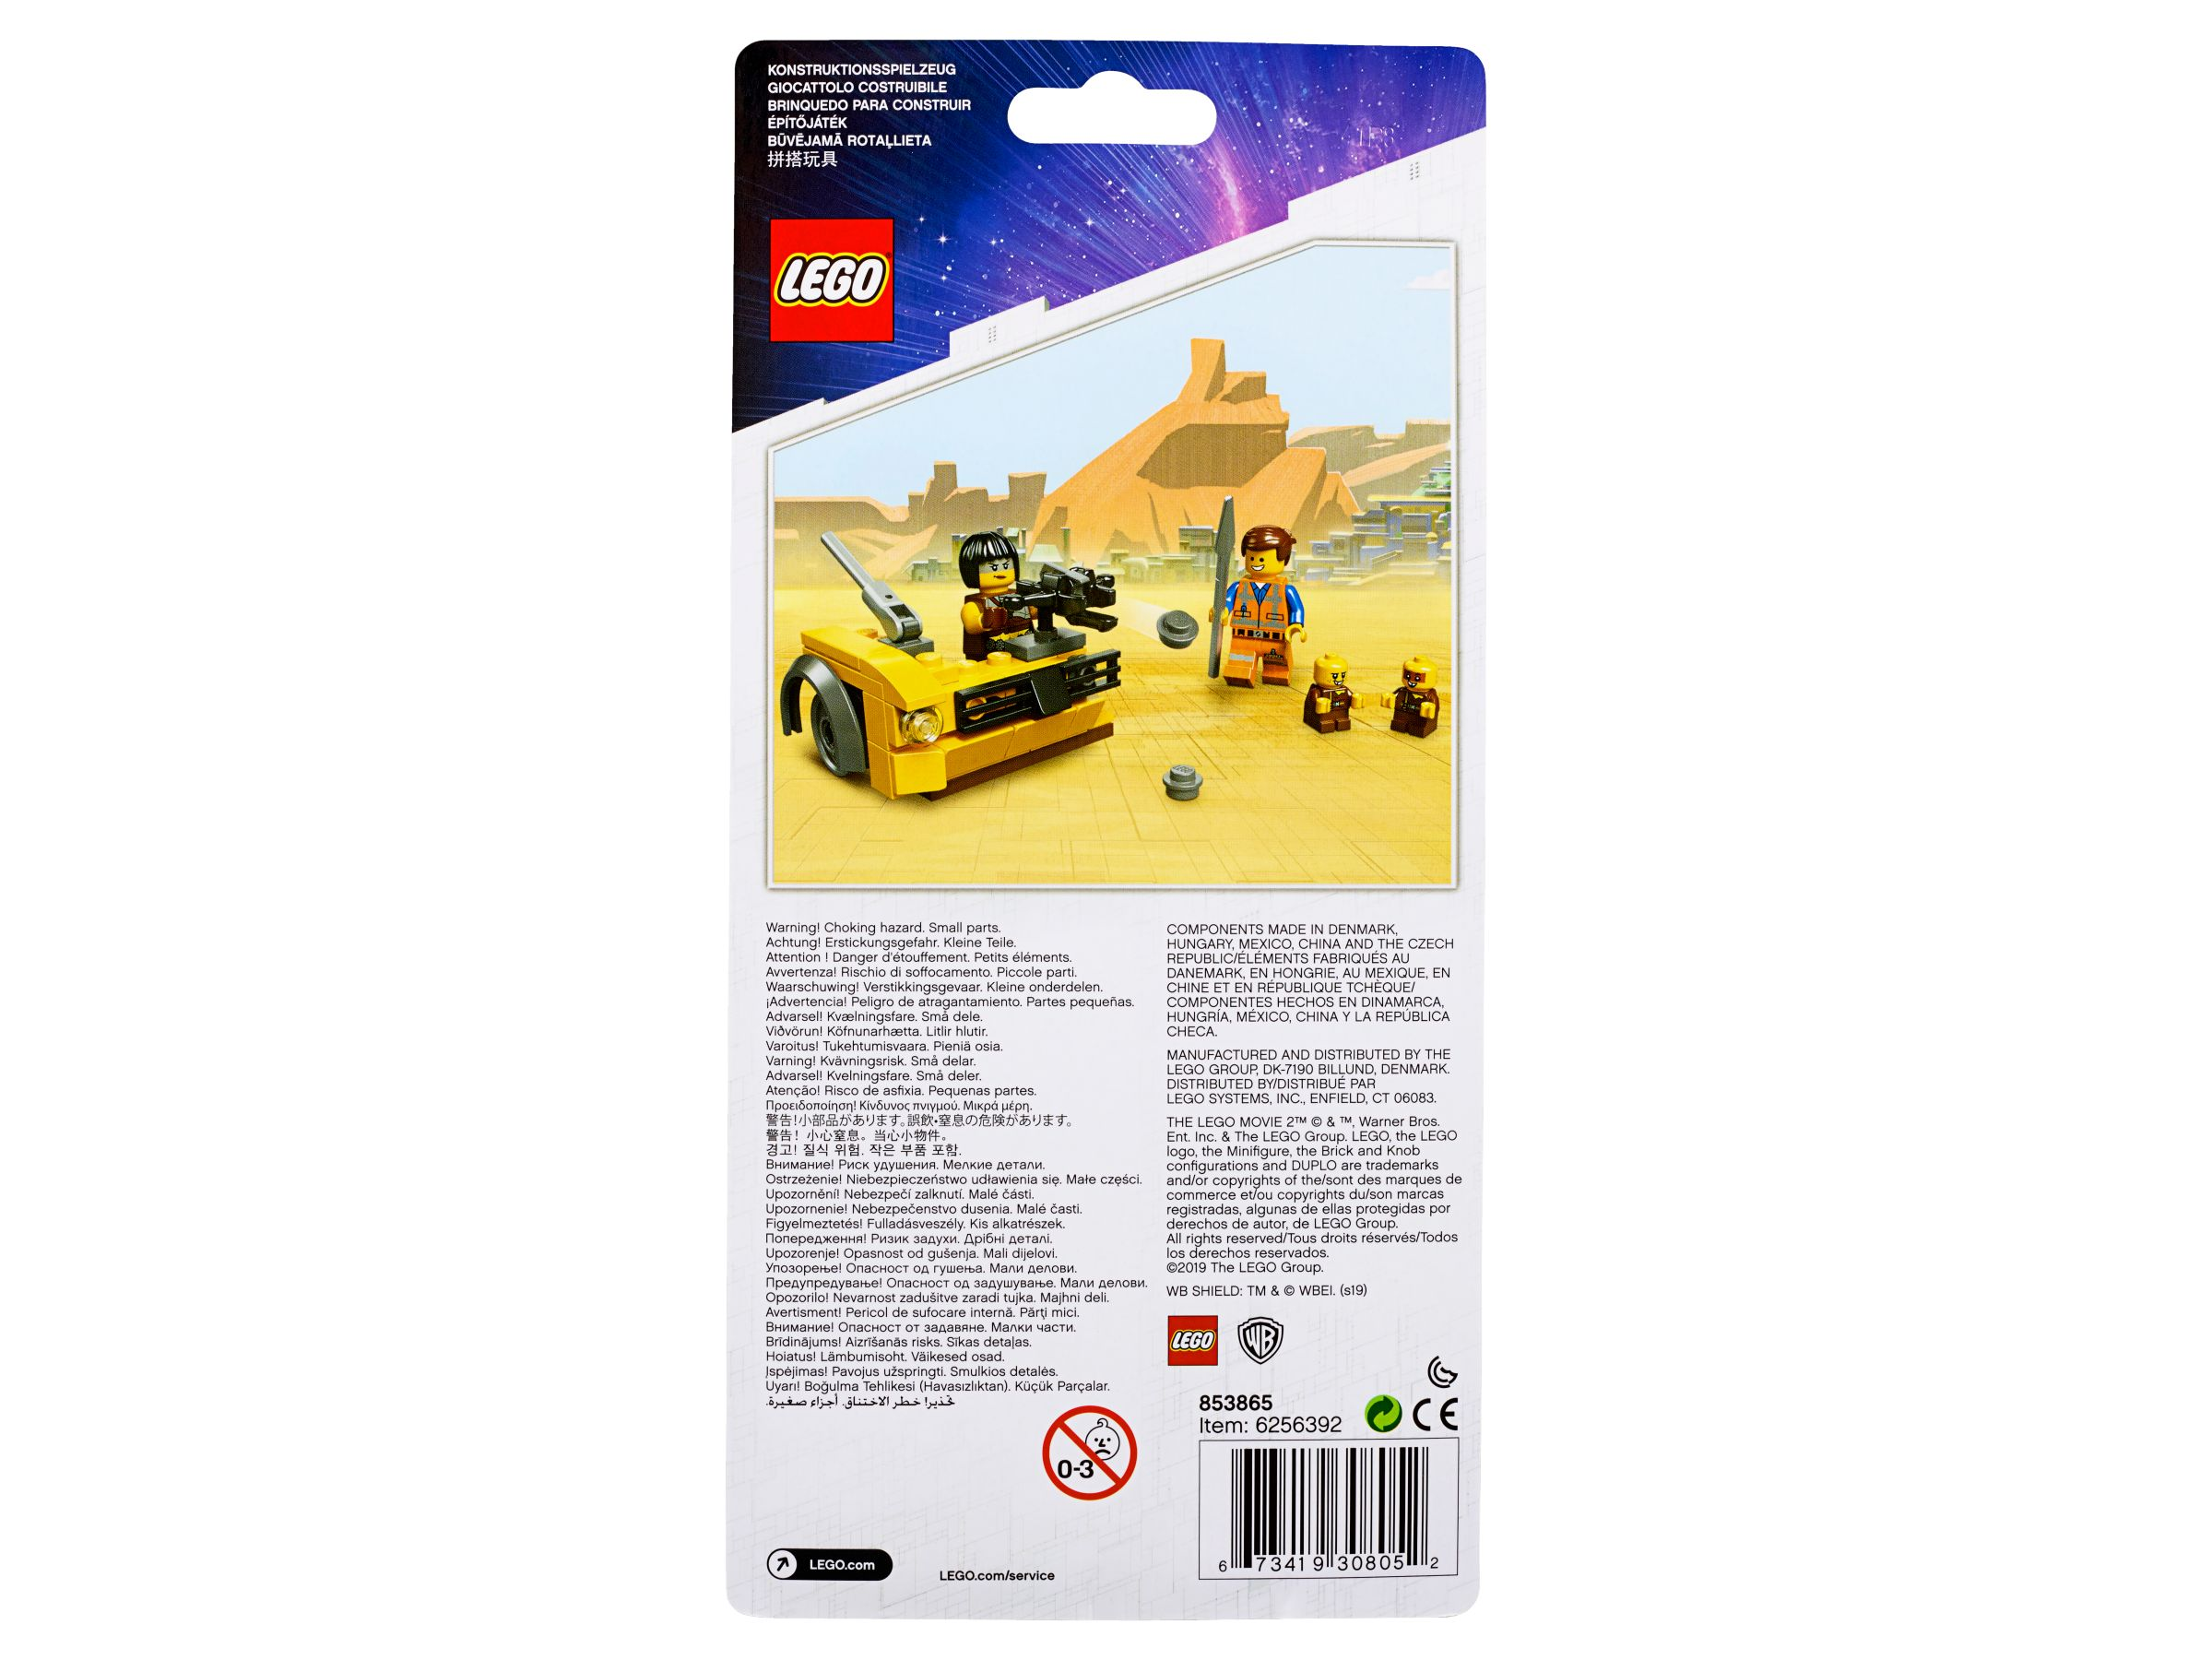 LEGO The Lego Movie 2 853865 Zubehörset - Kanalbabies LEGO_853865_alt2.jpg